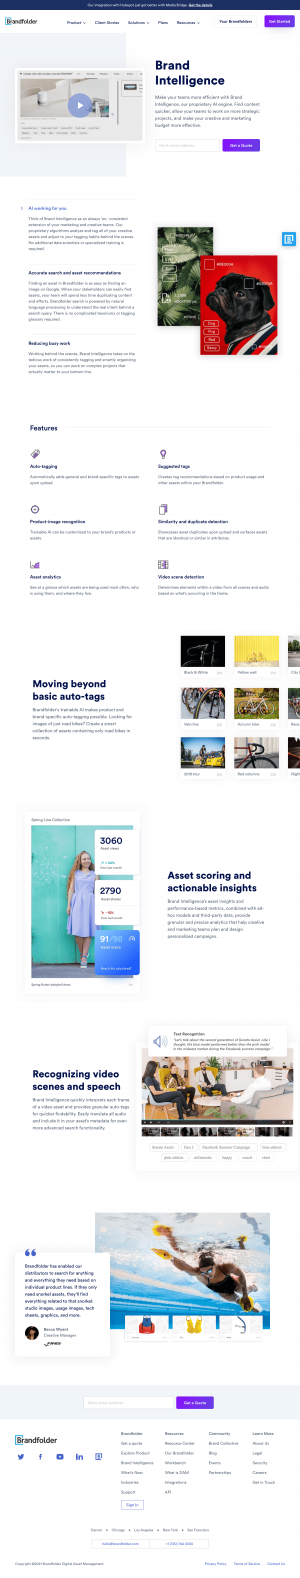 Brandfolder – Features page 1